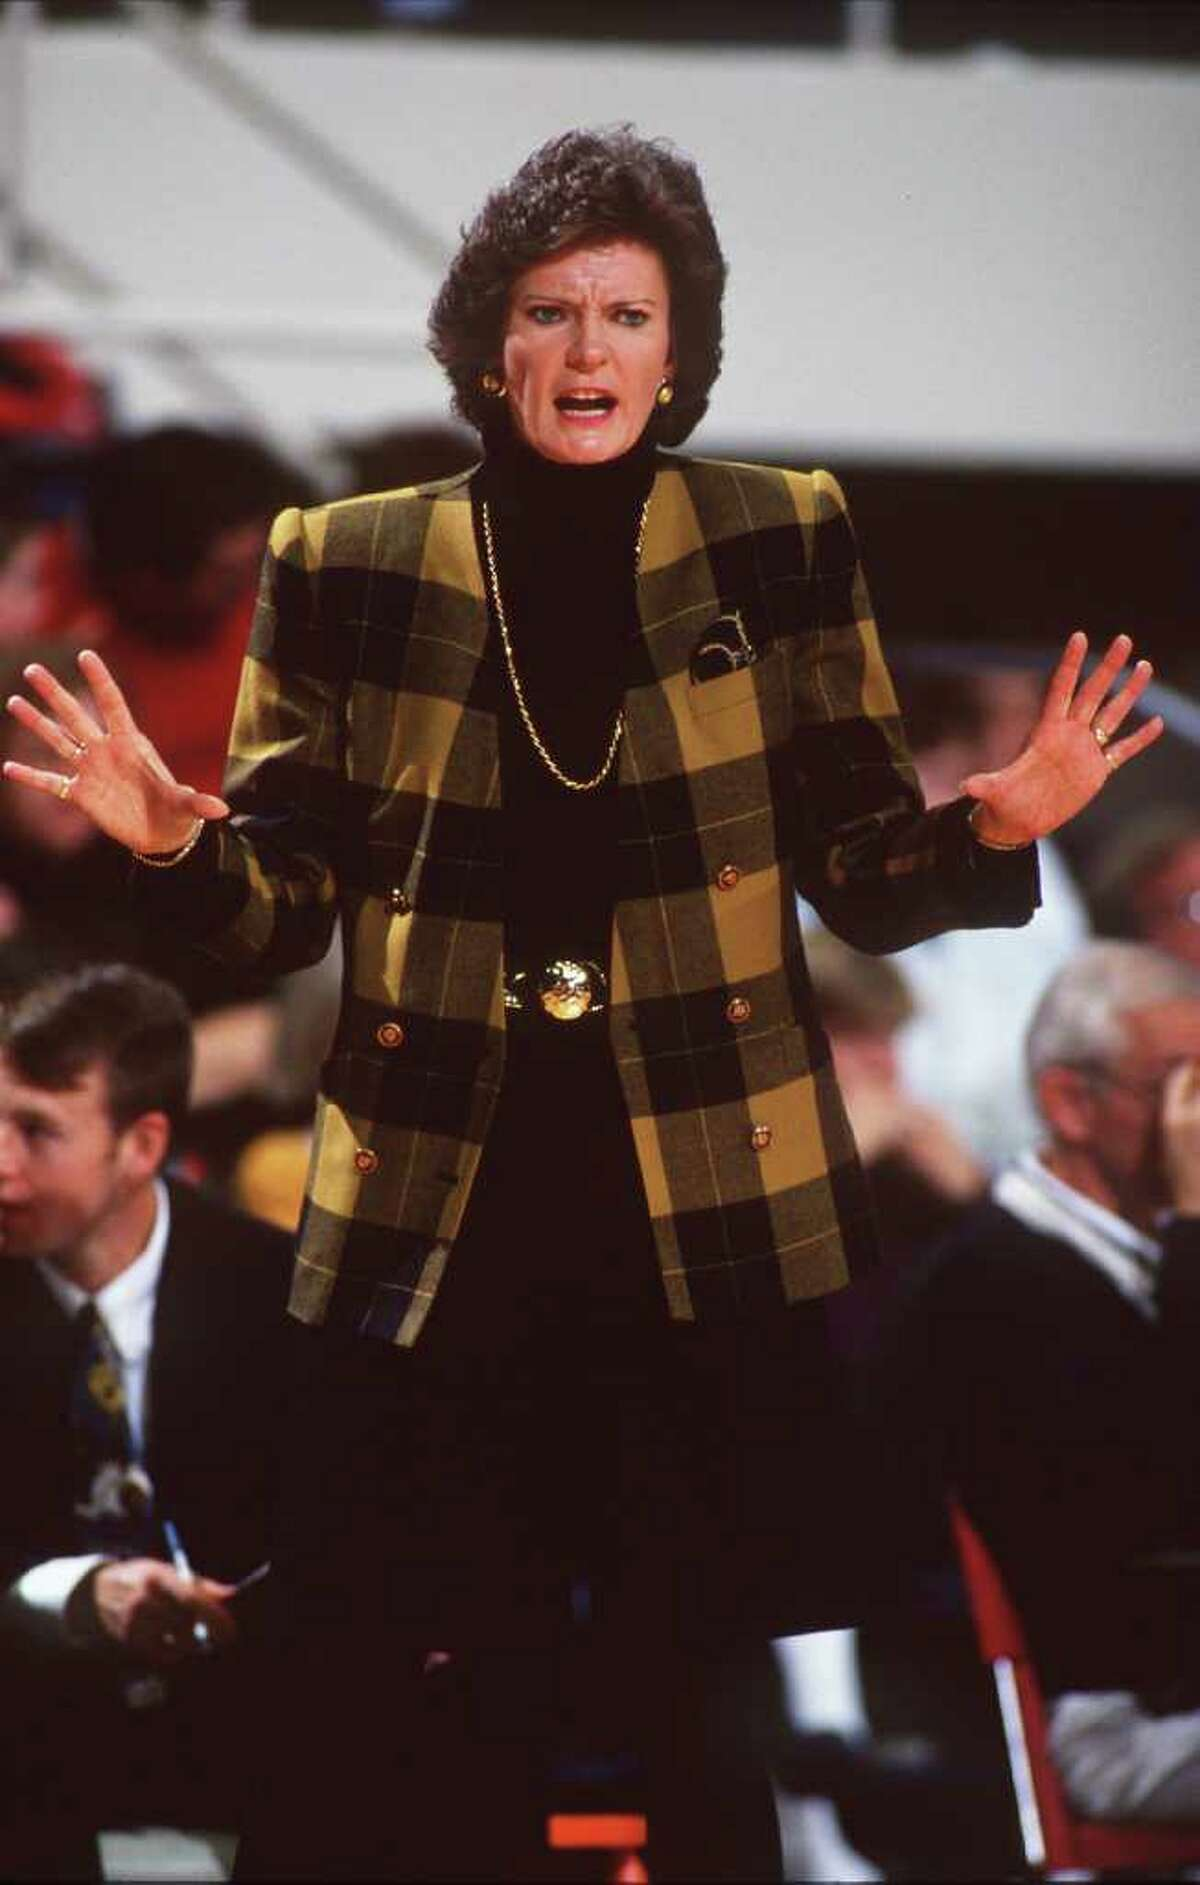 10 Dec 1994: UNIVERSITY OF TENNESSEE HEAD WOMEN''S BASKETBALL COACH PAT SUMMITT ISSUES INSTRUCTIONS TO HER TEAM FROM THE SIDELINES DURING THEIR 78-74 WIN OVER PENN STATE AT THE ROBBINS CENTER IN RICHMOND, VIRGINIA.